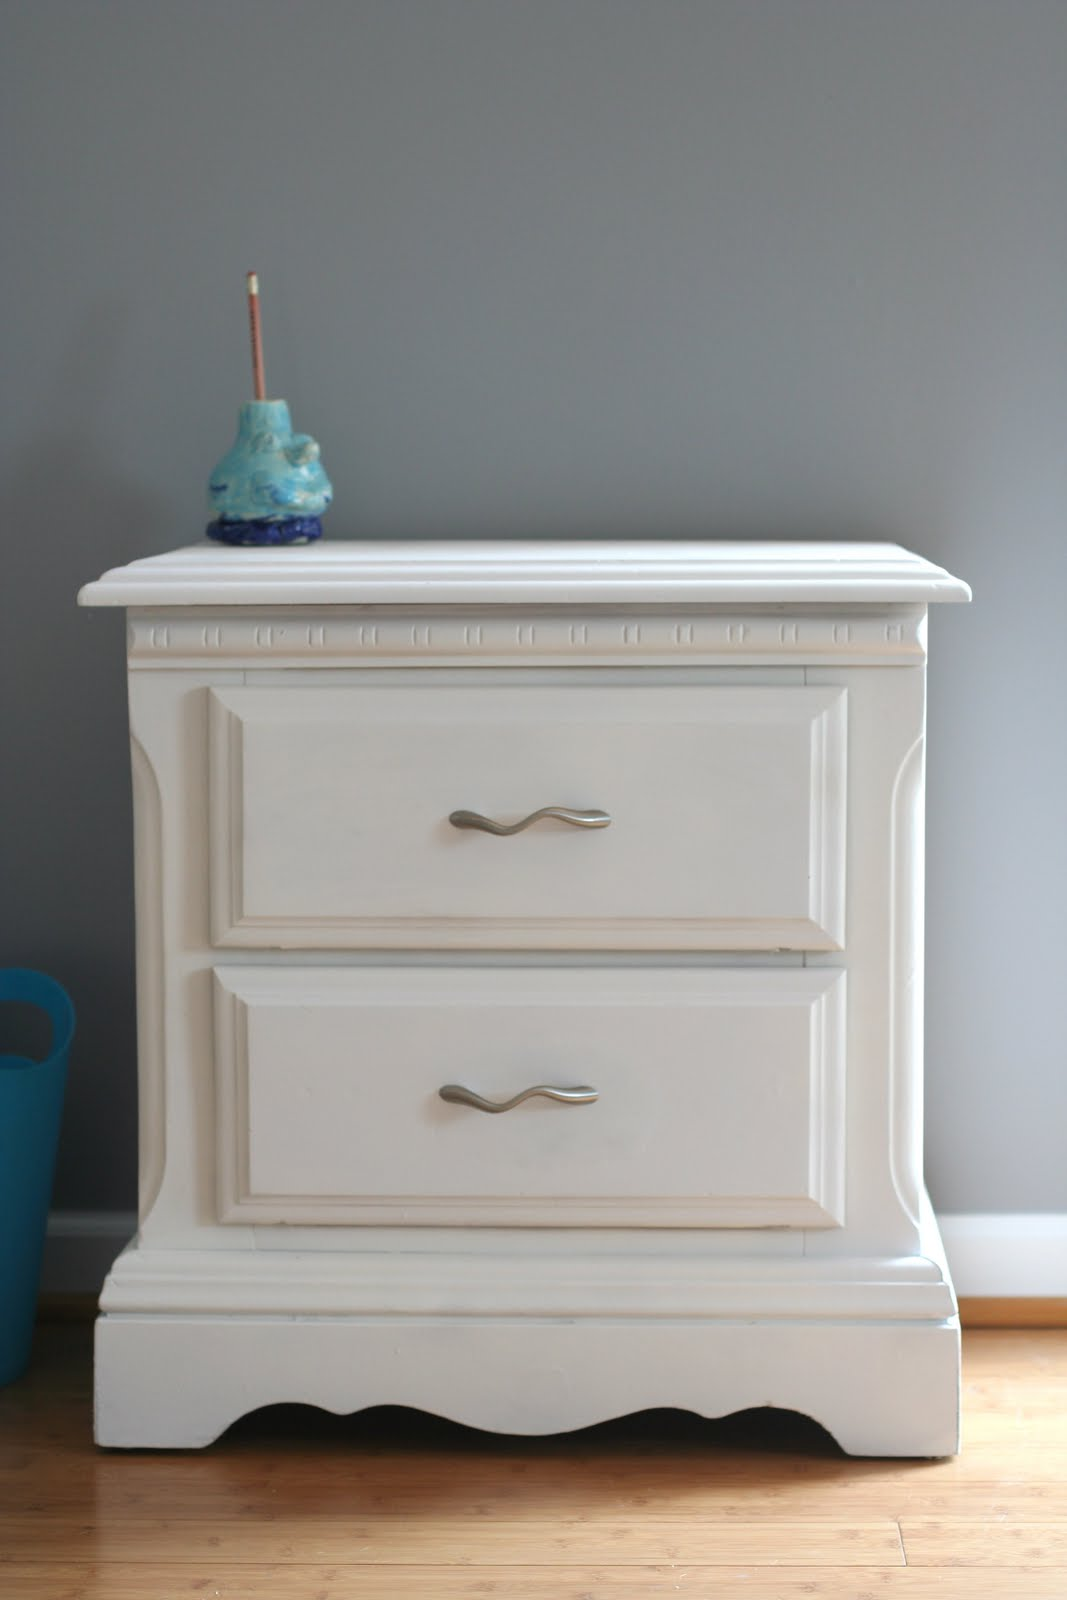 Pinterest challenge: spray painting furniture